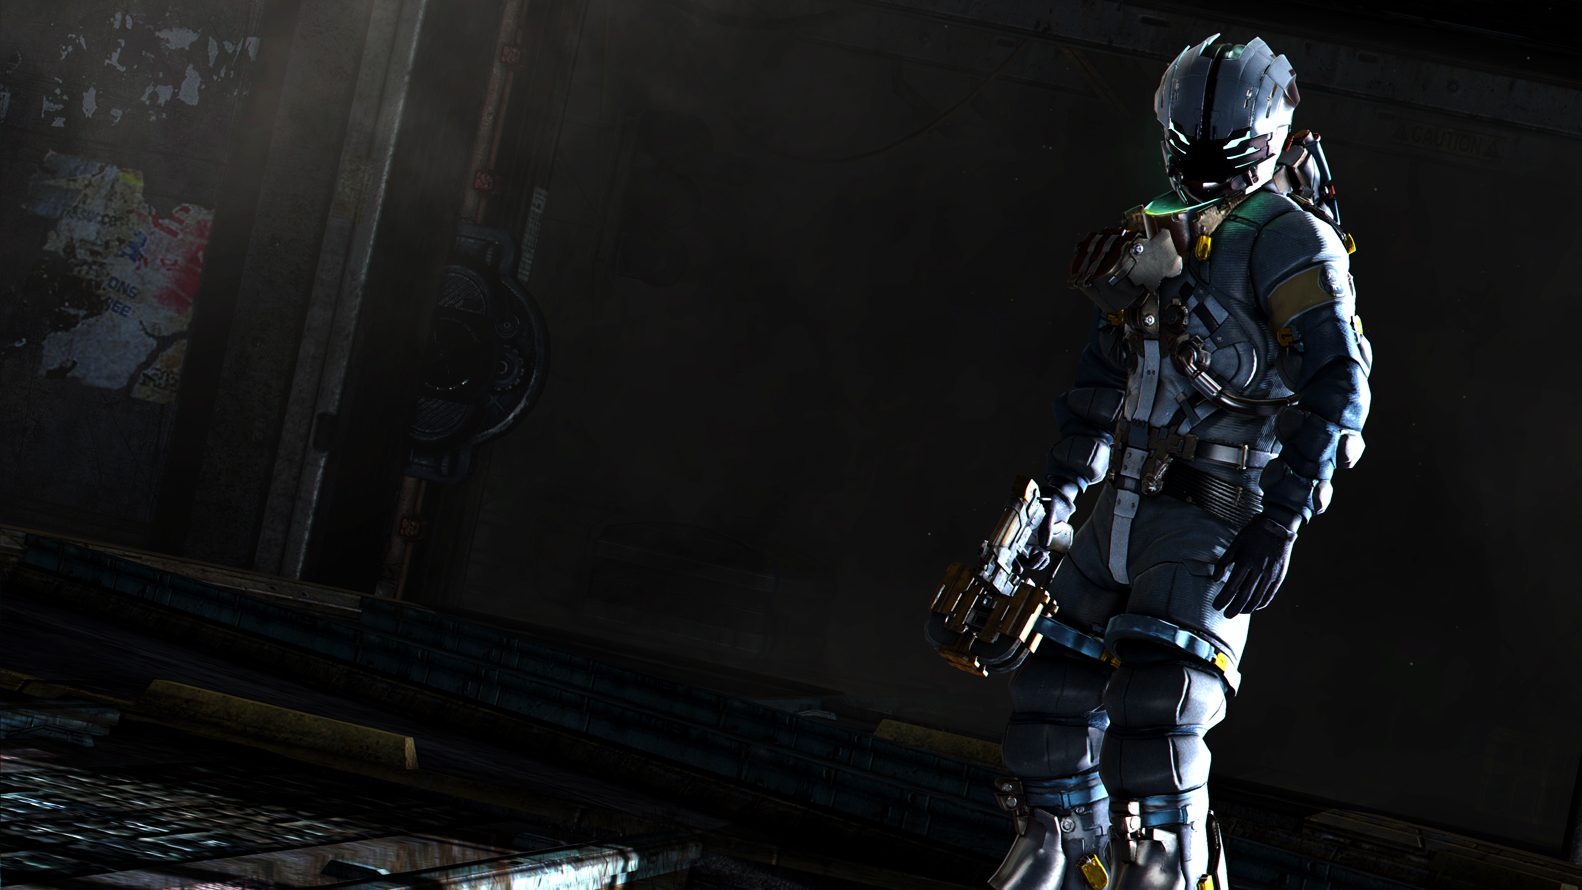 Dead Space 3 2013 Game HD Wallpapers:wallpapers screensavers